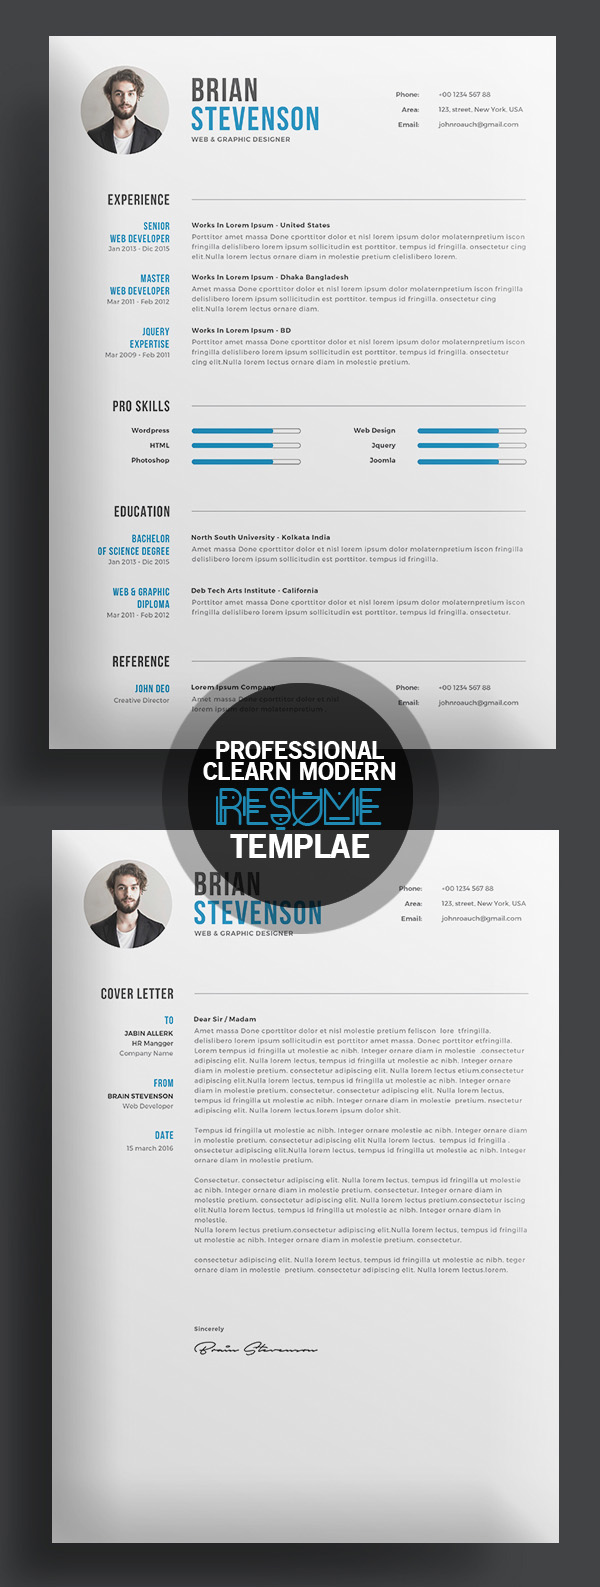 creative clearn professional resume template - Resume Templates For Graphic Designers